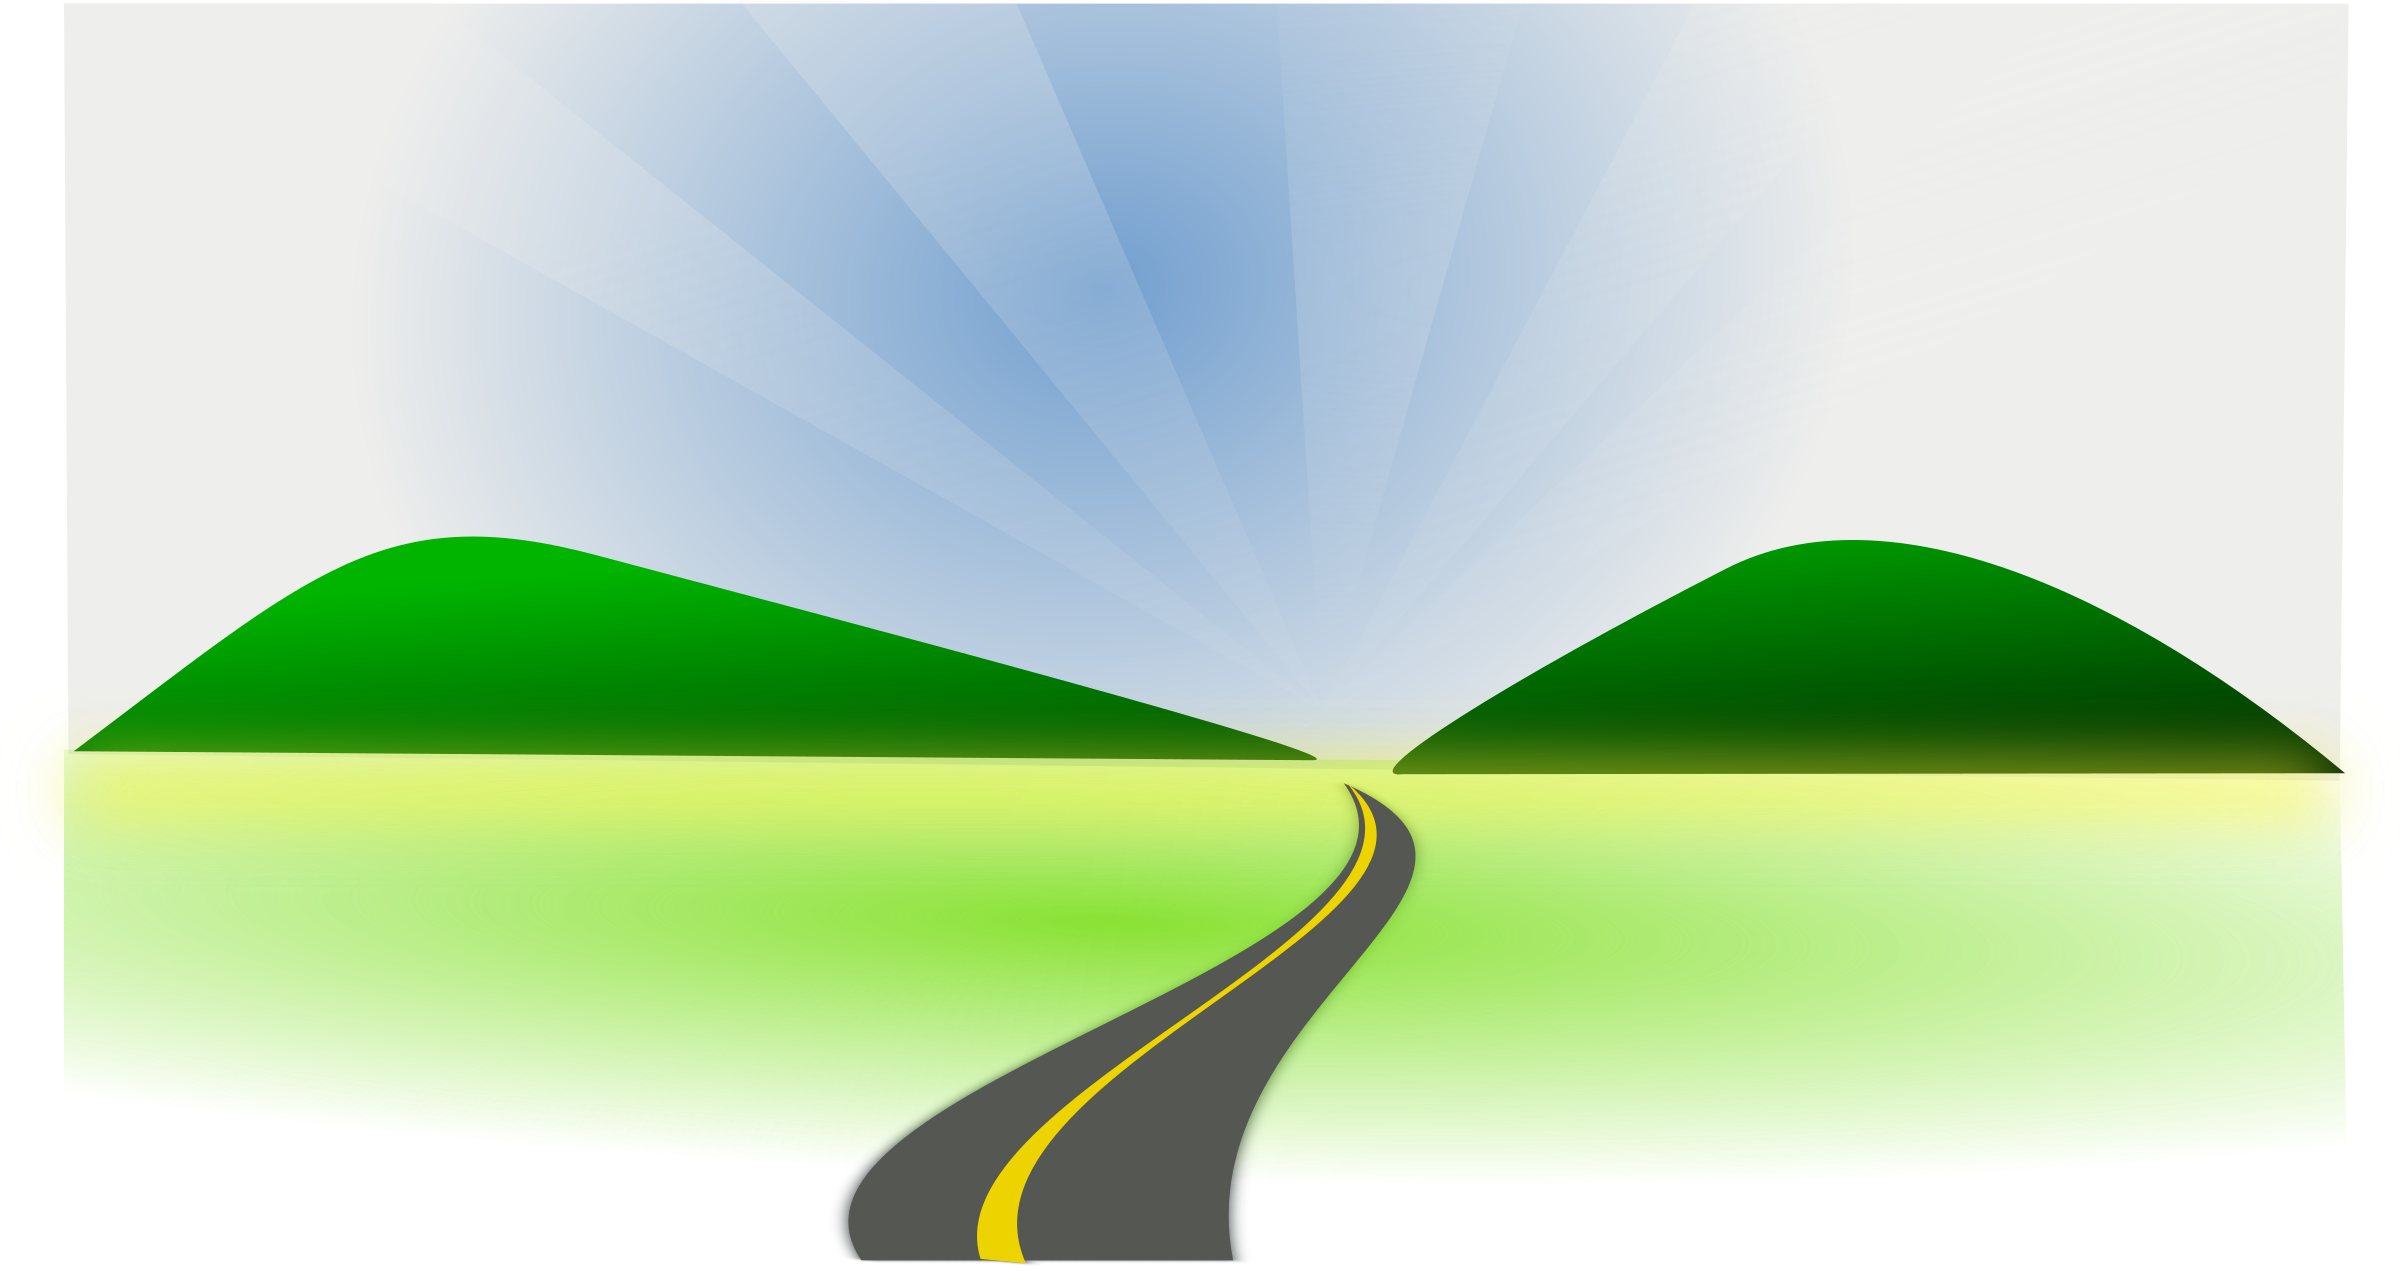 Car road clipart graphic library download Road Trip Clipart at GetDrawings.com | Free for personal use Road ... graphic library download